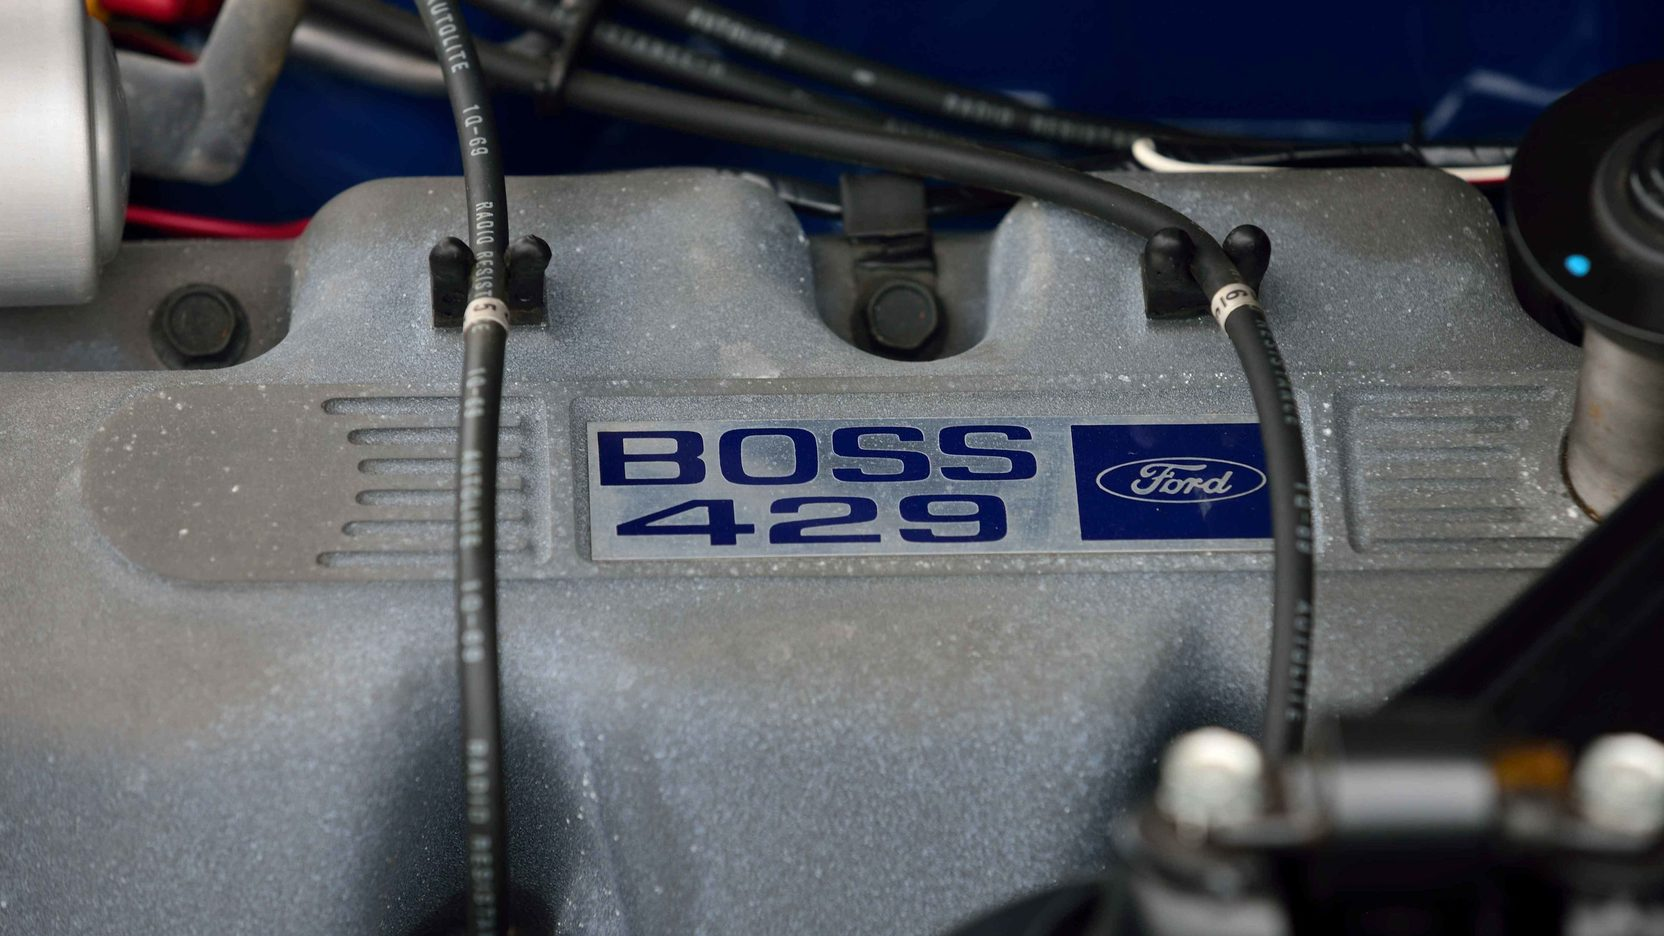 1969 Ford Mustang Boss 429 Top Speed Engine Diagram